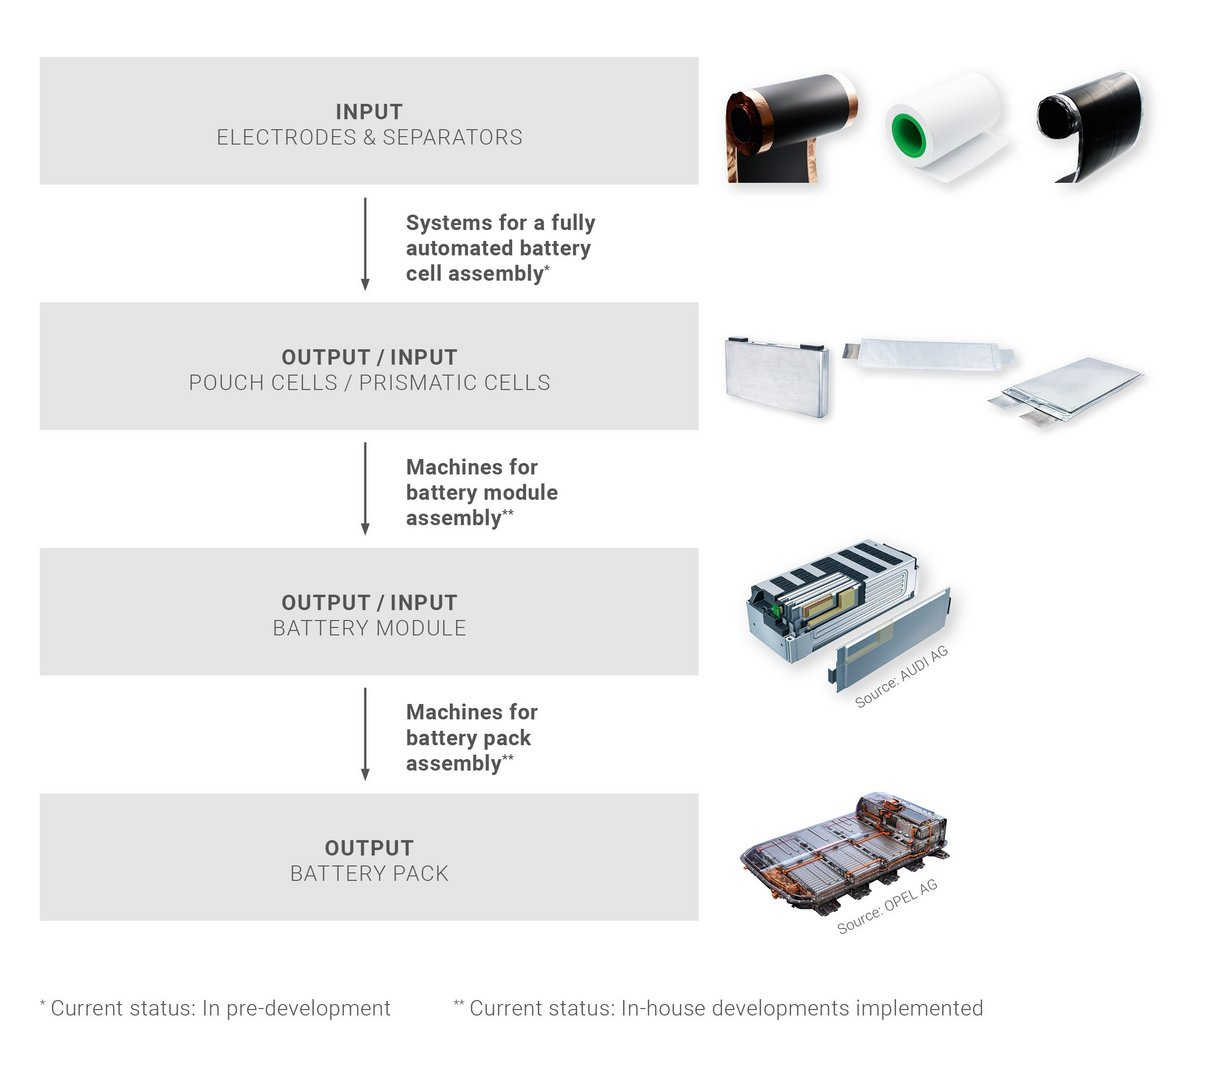 Process Steps In The Battery Manufacturing